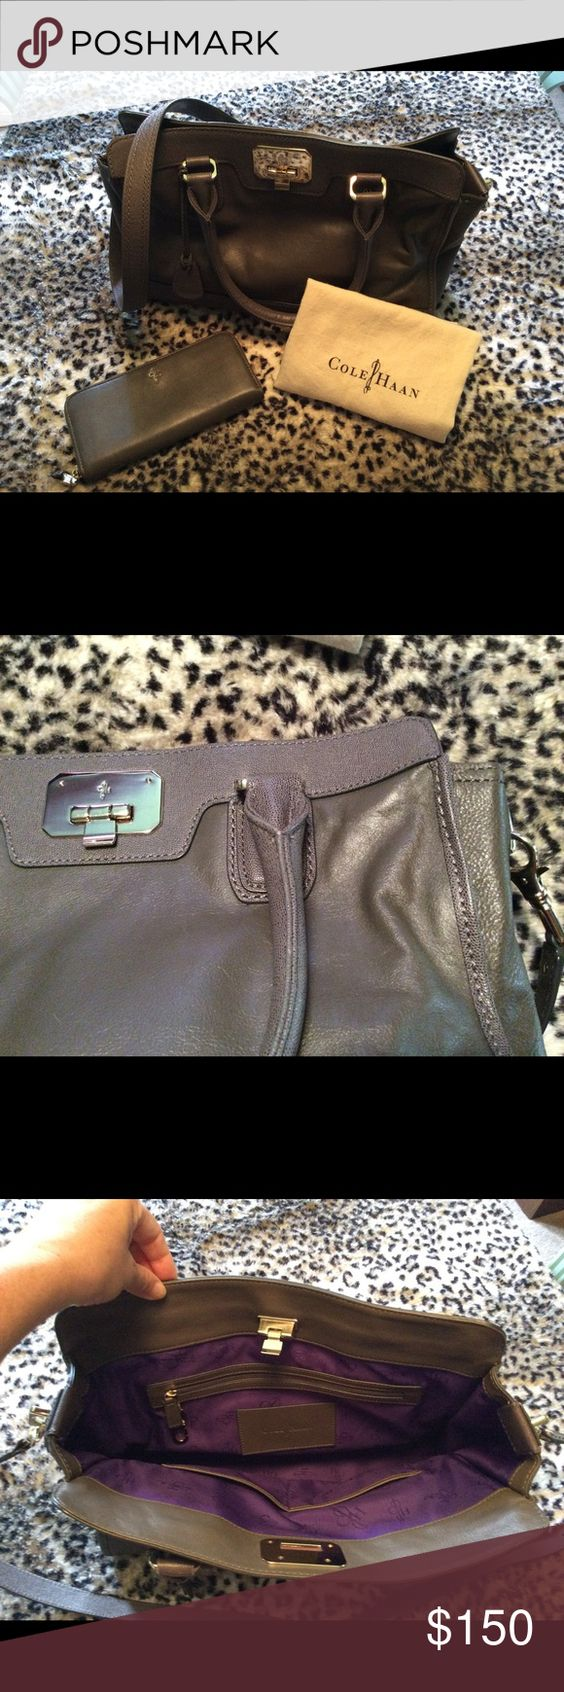 Beautiful gray satchel (wallet sold separately) Rich gray with solid brass hardware, royal purple lining, and removable extension handle that is long enough to use the bag as a cross body satchel.  This bag was very gently used for an extremely short time and is in beautiful condition.  Comes with dust bag. Cole Haan Bags Satchels